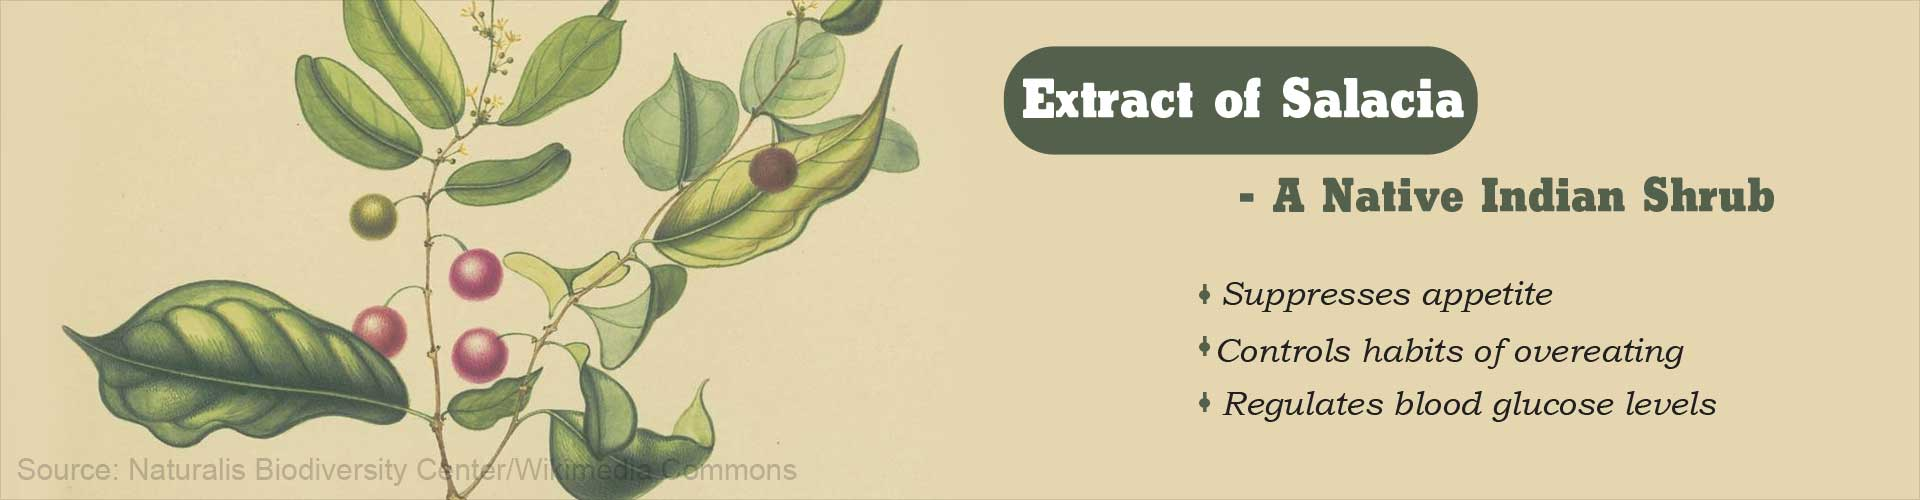 Extract of Salacia - A Native Indian Shrub - Suppresses appetite - Controls habits of overeating - Regulated blood glucose levels